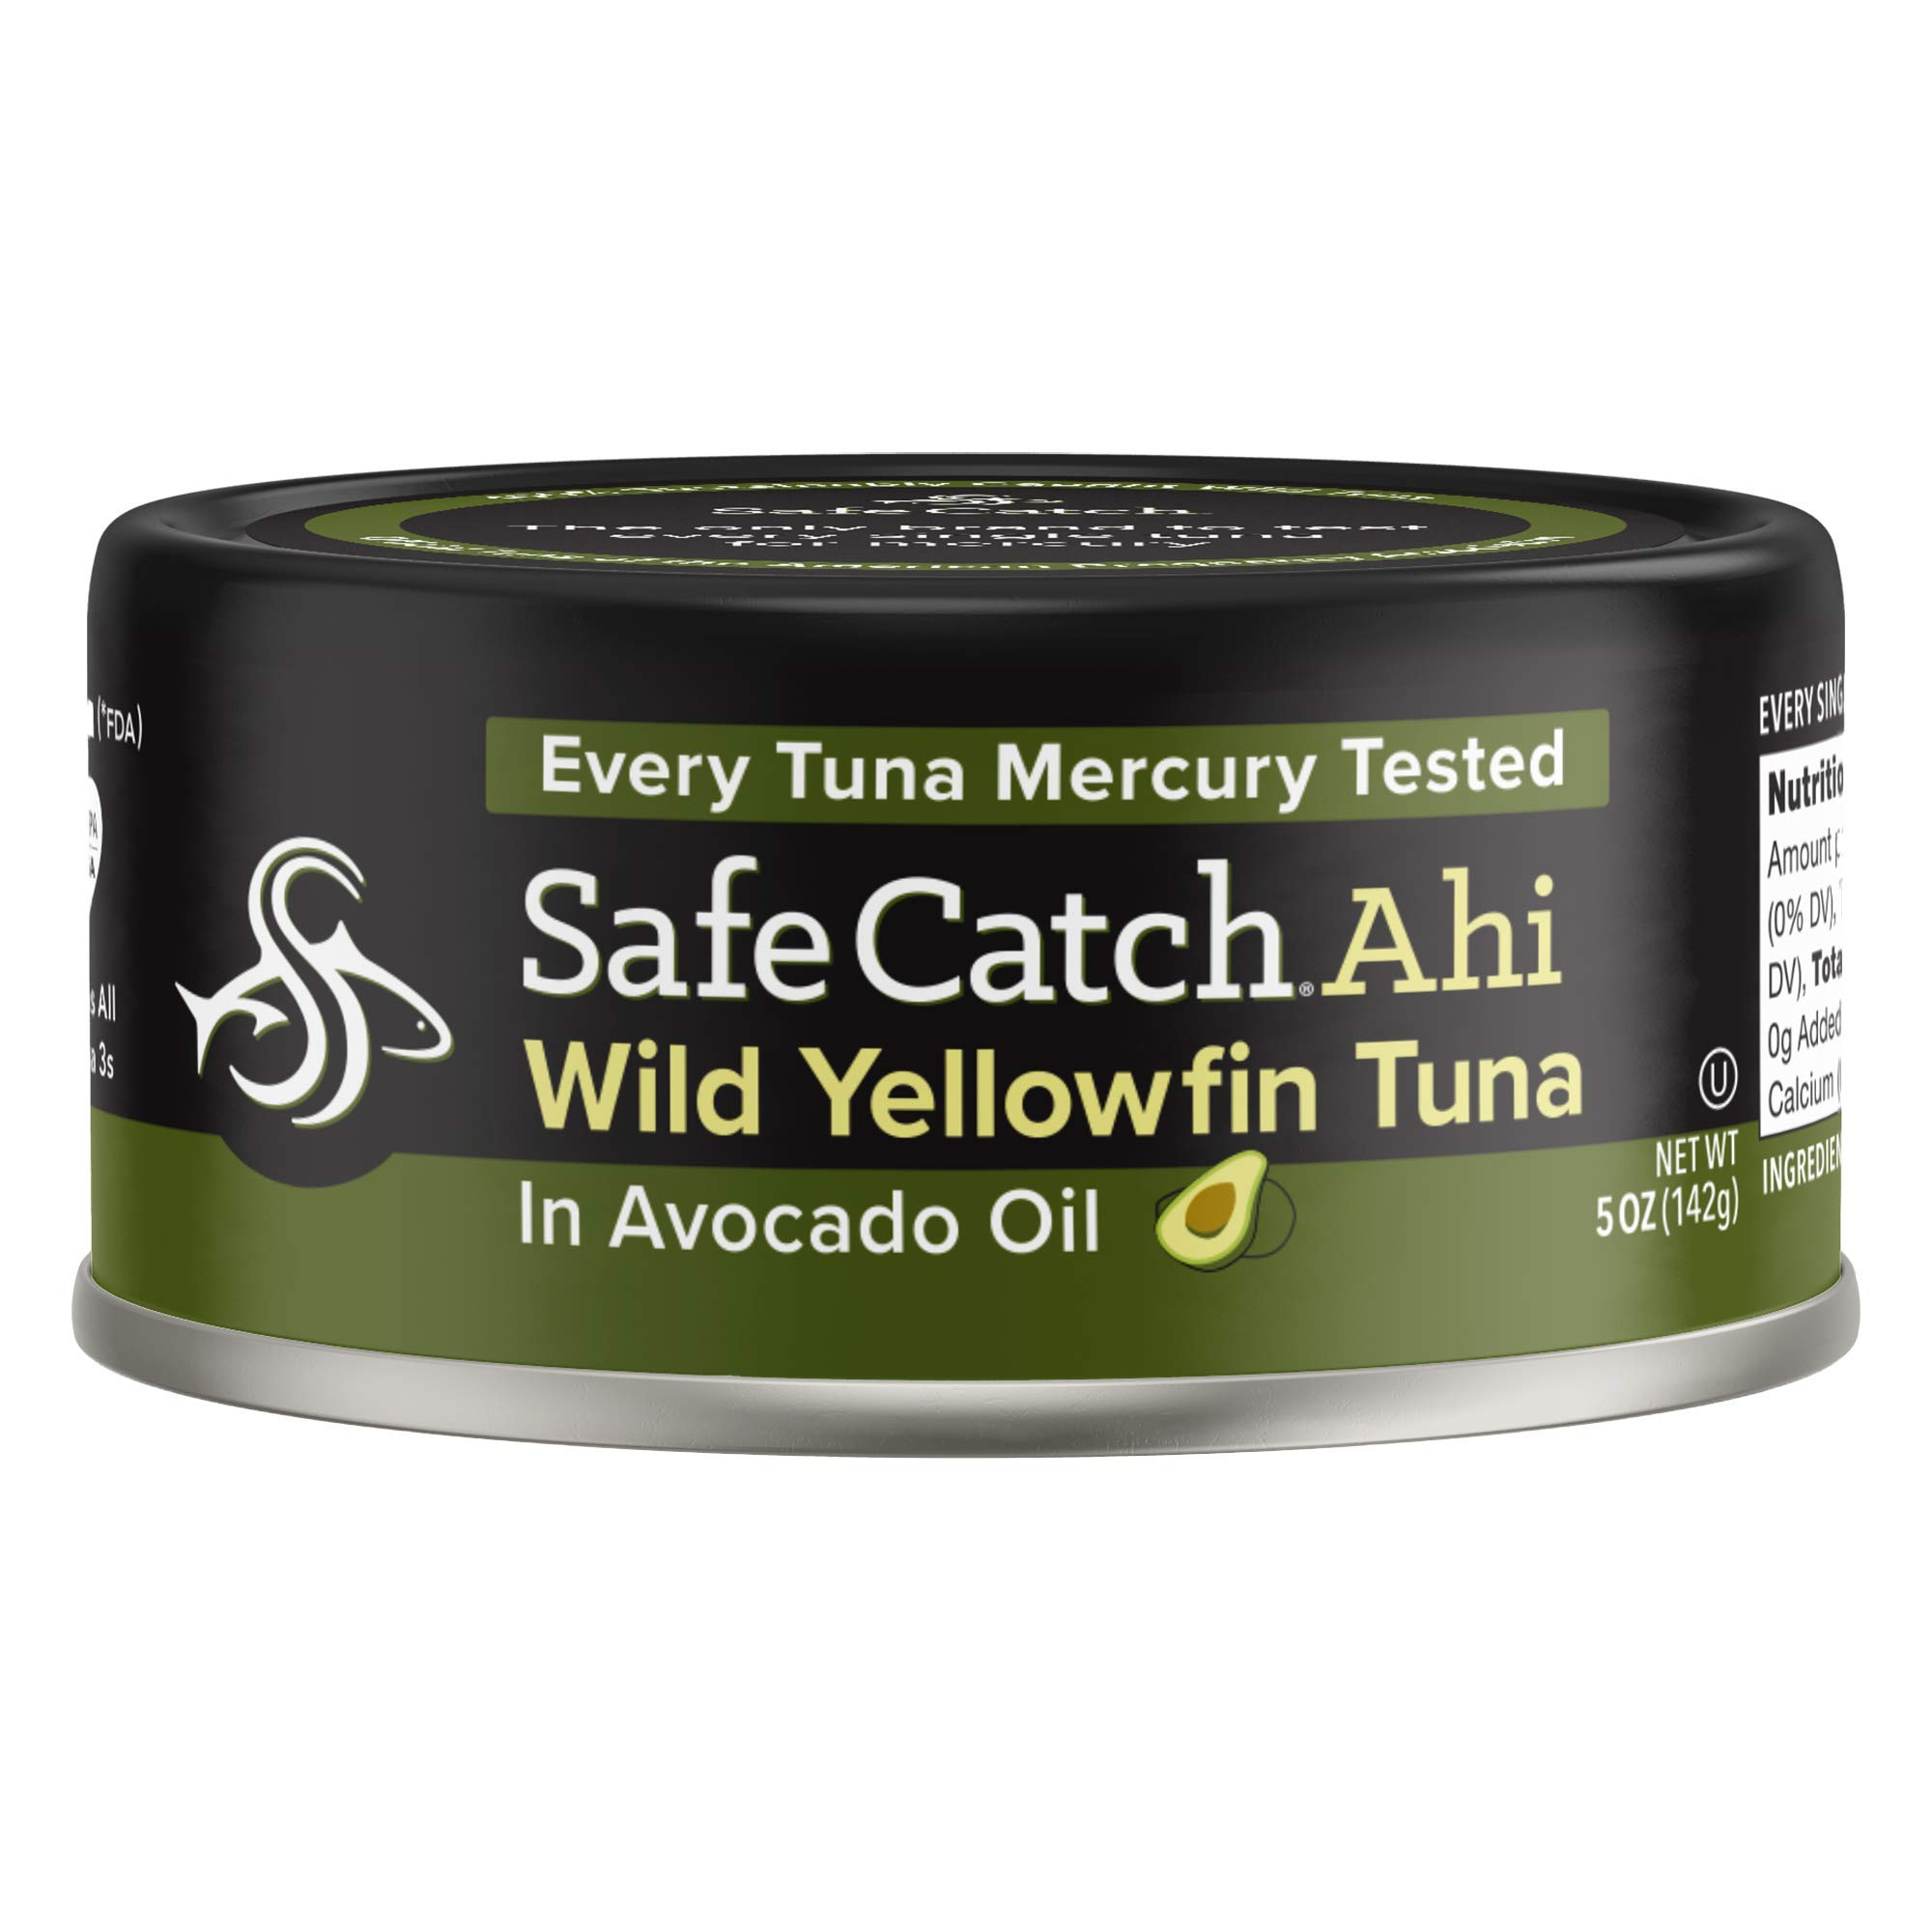 Safe Catch Ahi, Lowest Mercury Solid Wild Yellowfin Tuna Steak, 5 oz Can. The Only Brand to Test Every Tuna for Mercury (6 Pack in Avocado Oil) by Safe Catch (Image #1)